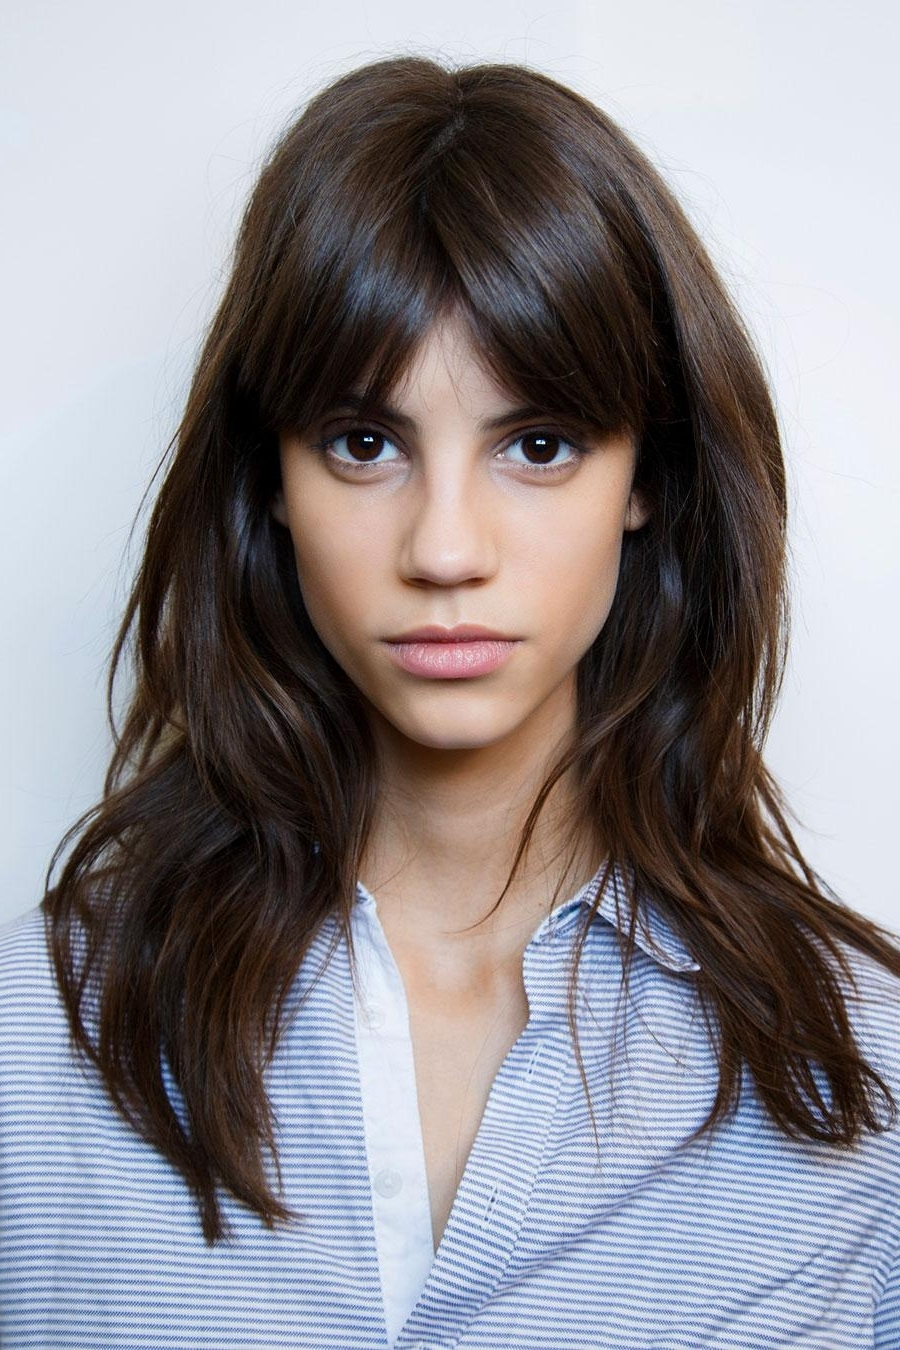 Widely Used Shaggy Salon Hairstyles For The Most Popular Haircuts Of The Summer, As Toldsalon Stylists (View 15 of 15)